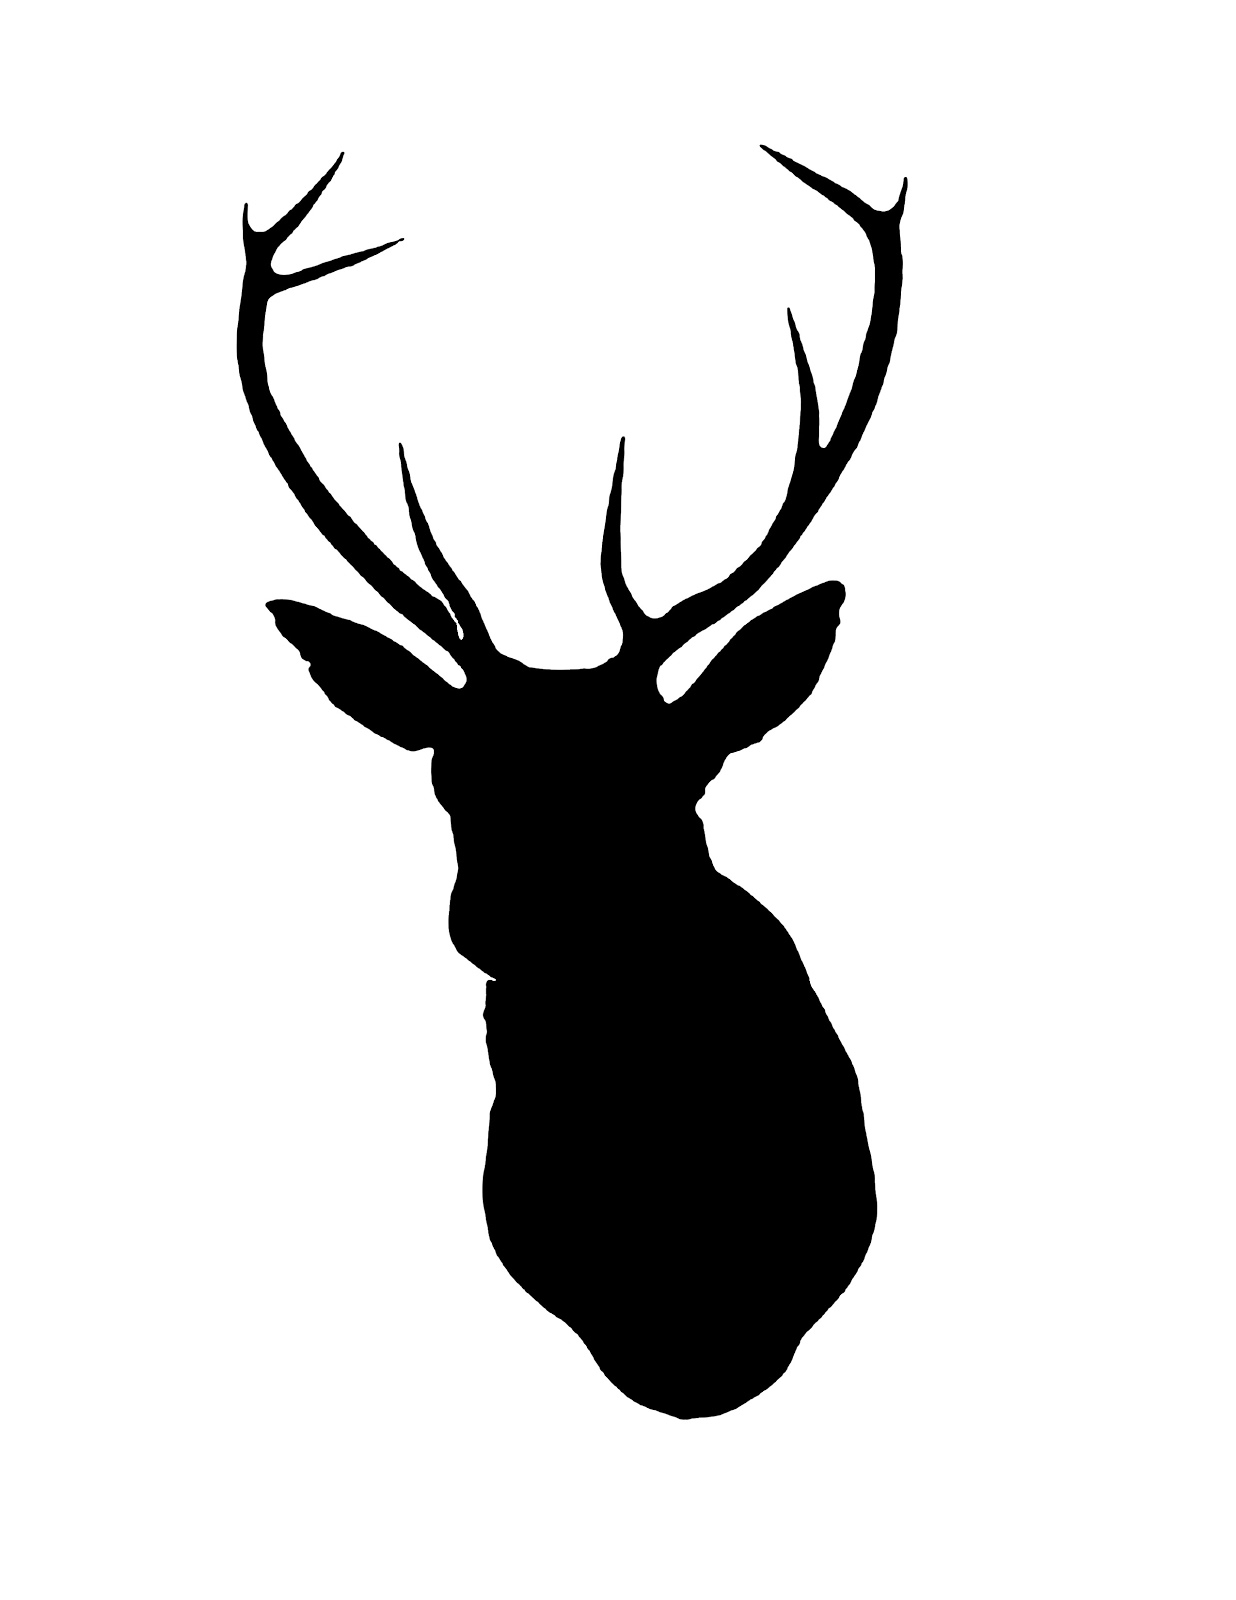 How To Draw A Deer Head Silhouette | picturespider clipartall.com